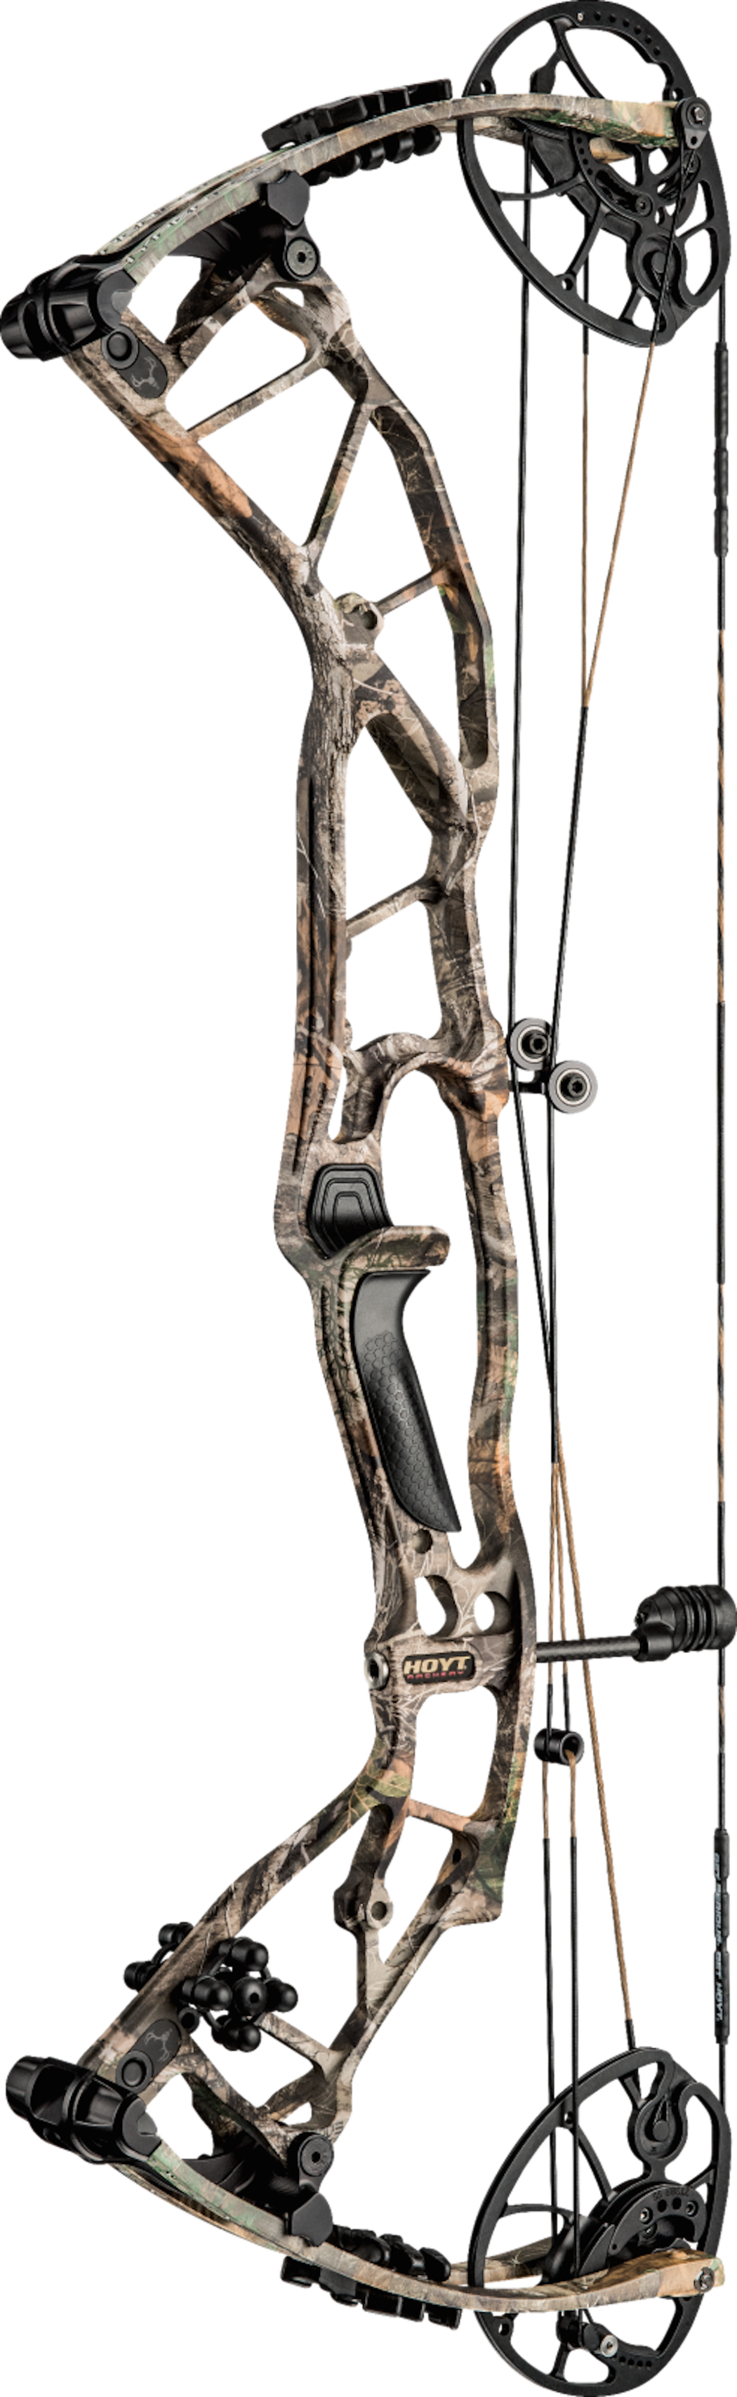 Realtree Hoyt HyperForce